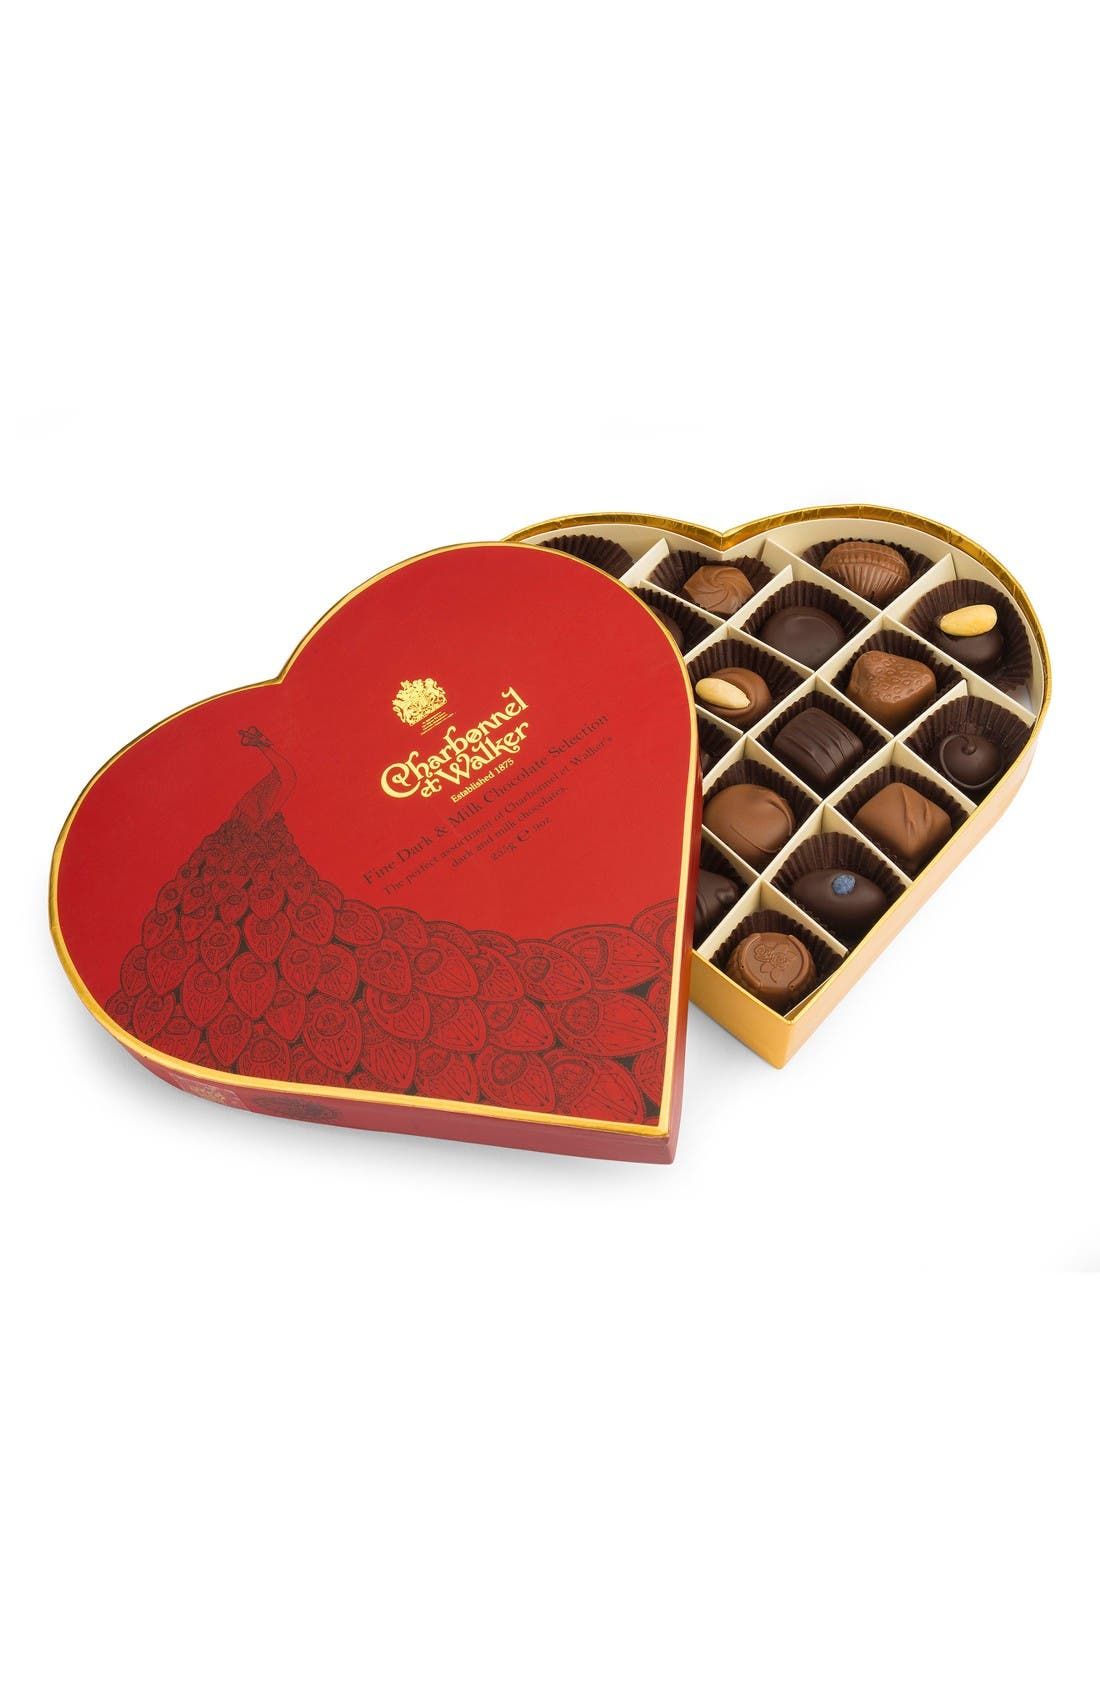 Main Image - Charbonnel et Walker Assorted Chocolates in Heart Shaped Gift Box